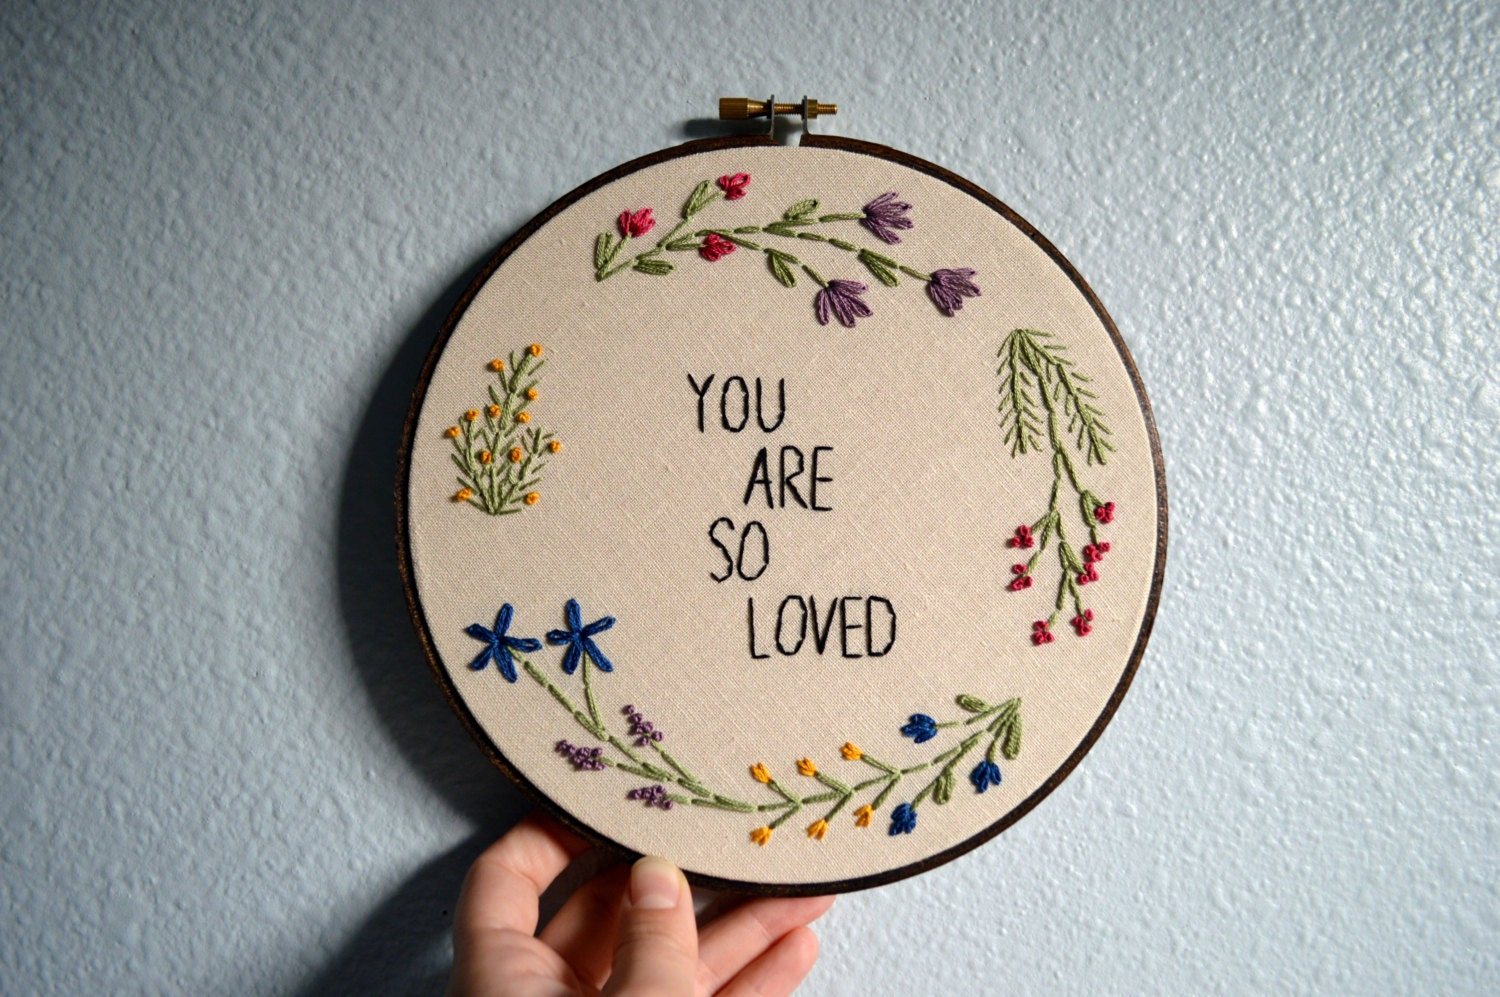 You are so loved floral wreath embroidery hoop by